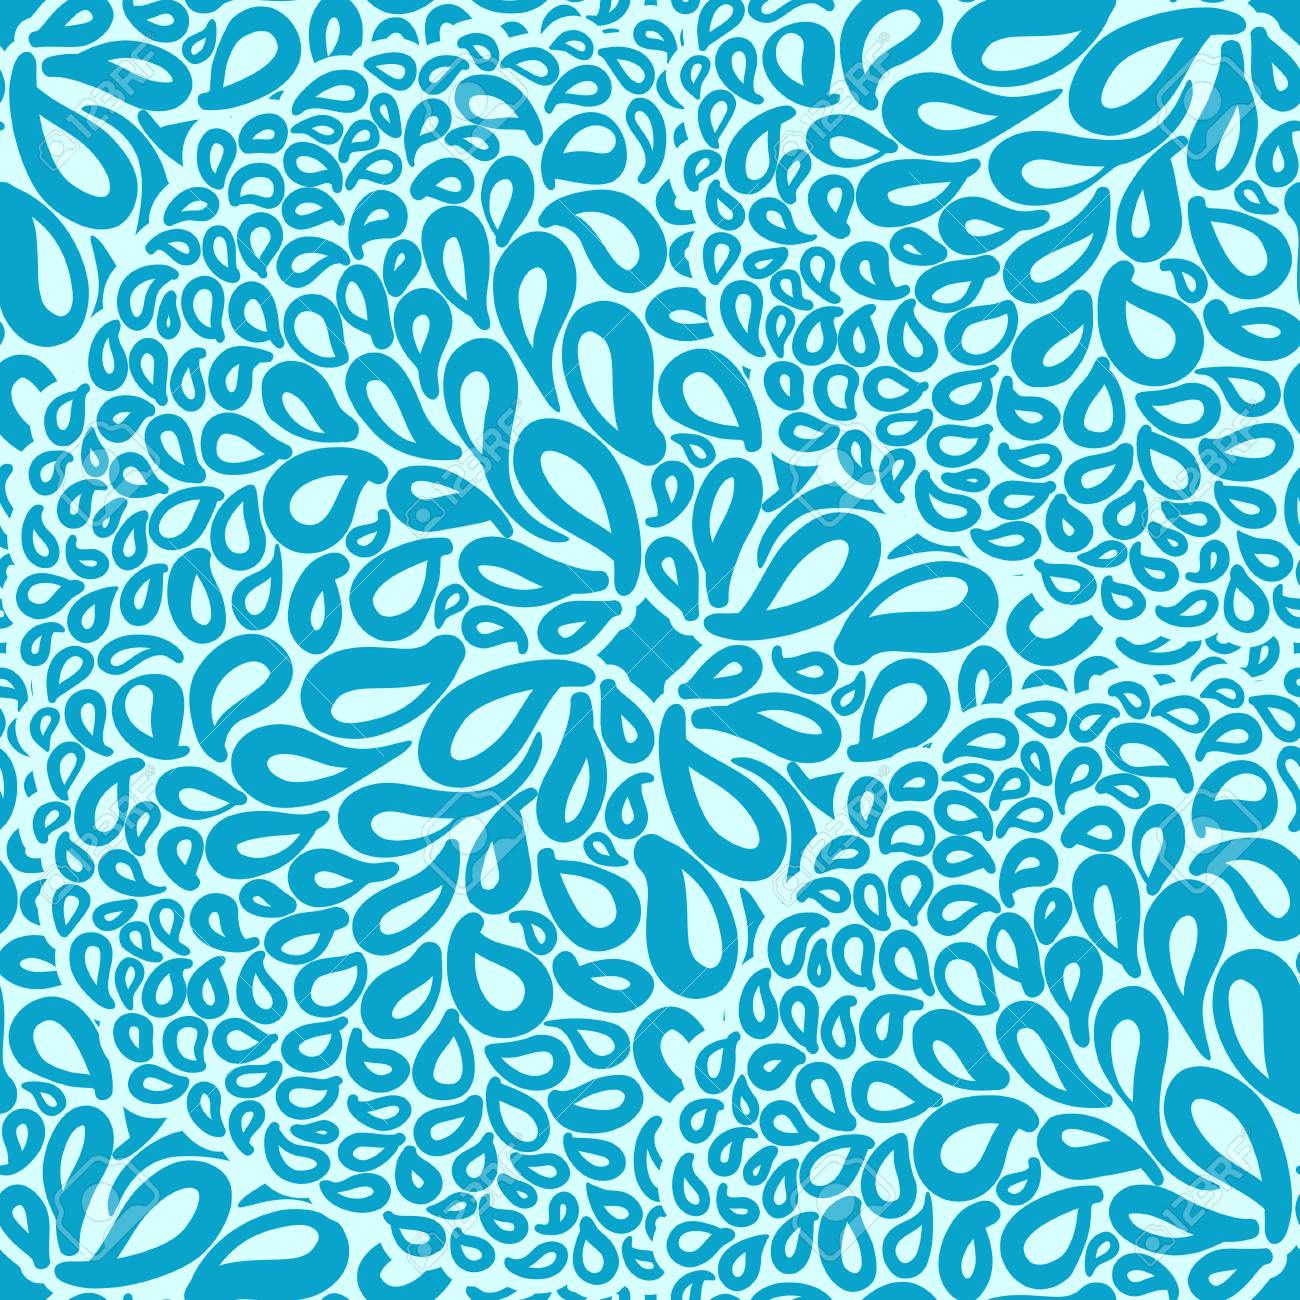 Blue Tiles Wallpaper Moroccan Ornaments In And White Colors Seamless Pattern